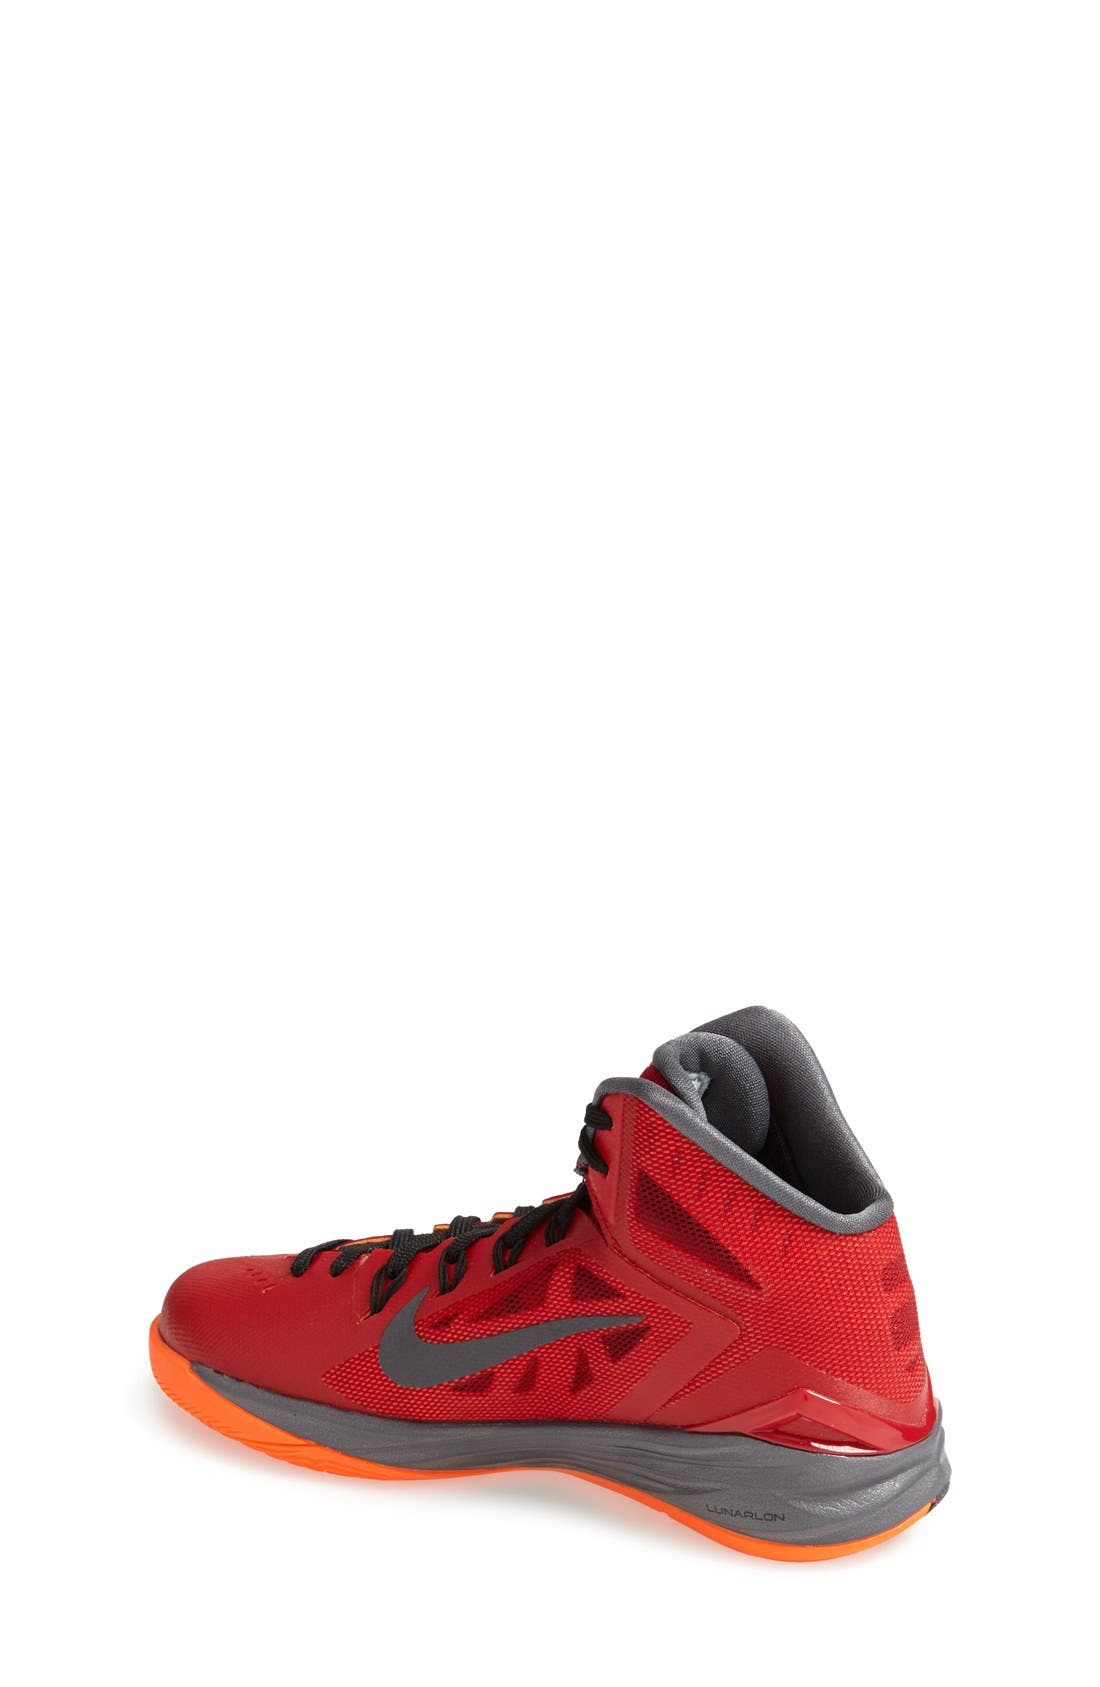 Alternate Image 2  - Nike 'Hyperdunk 2014' Basketball Shoe (Big Kids)